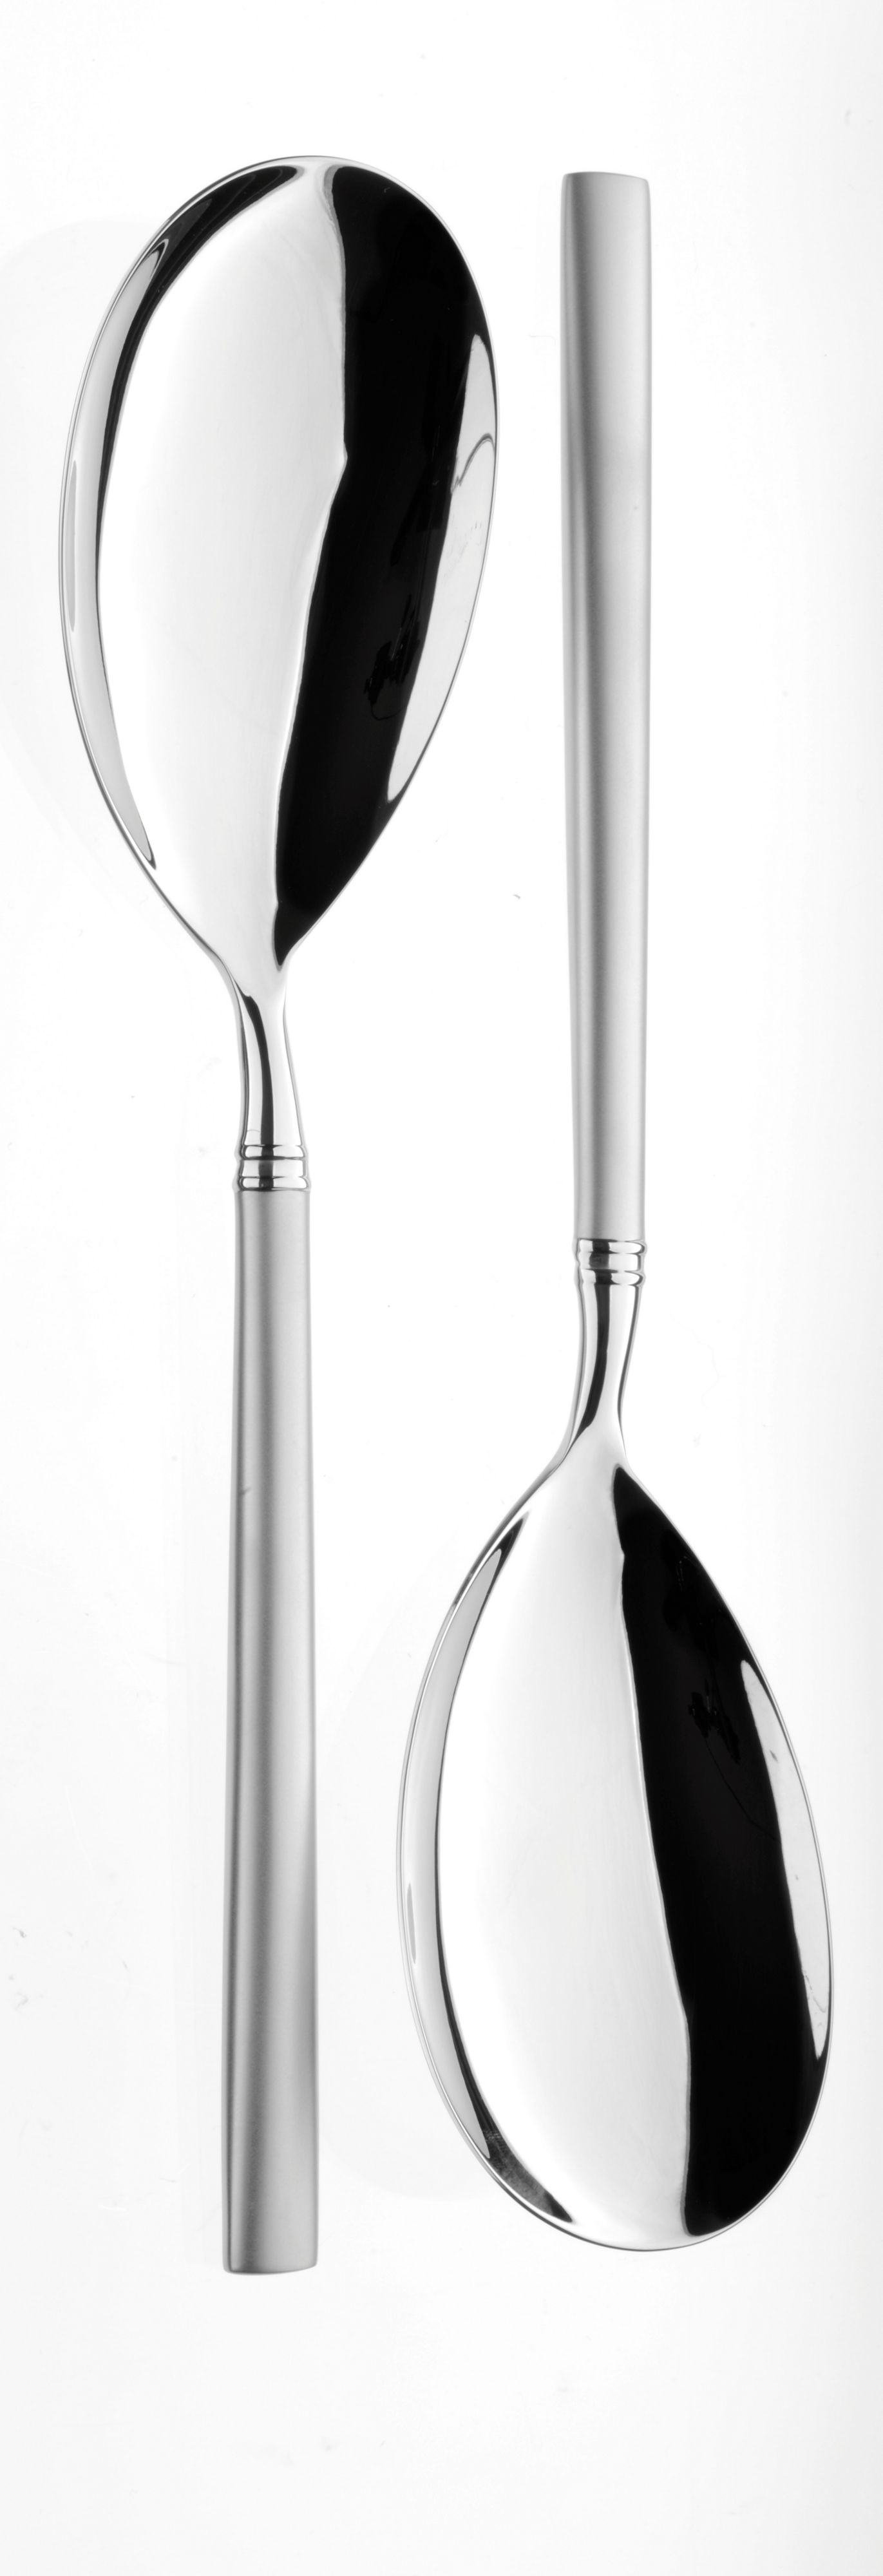 Orb stainless steel pair of large serving spoons